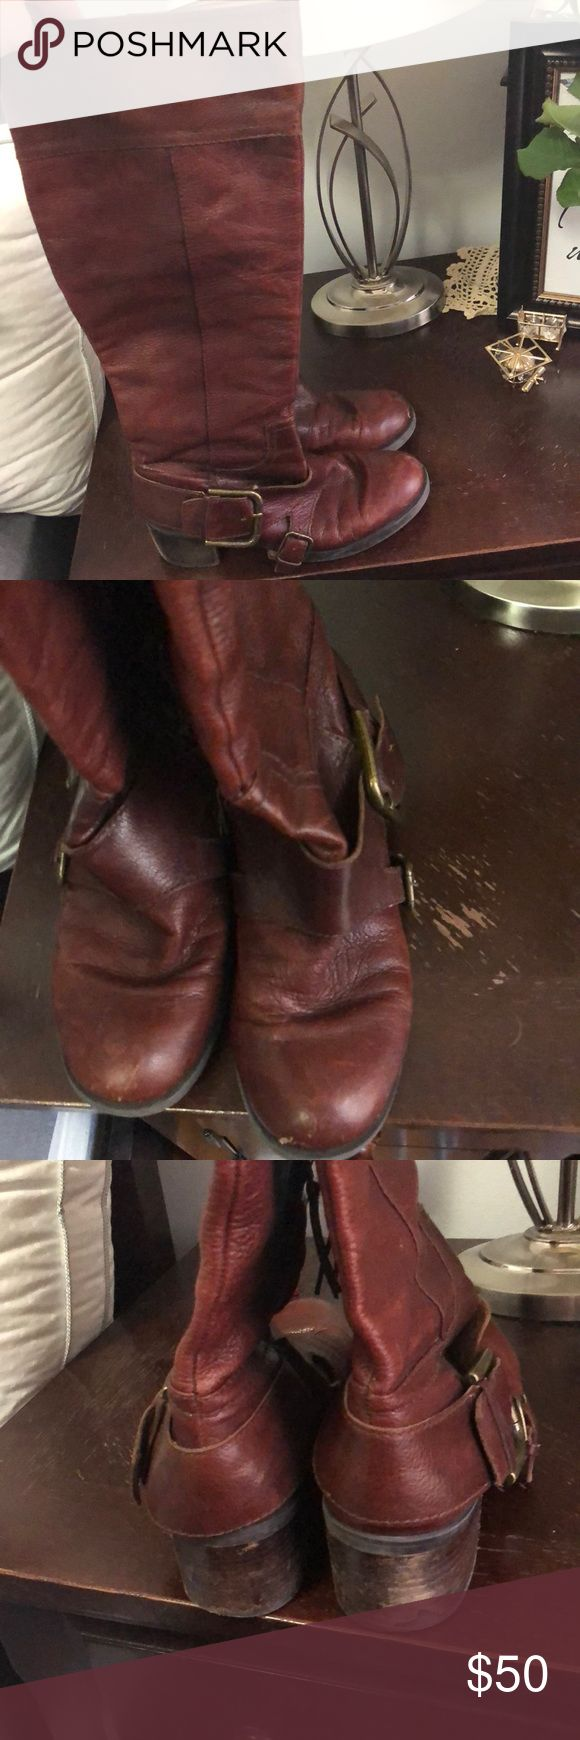 Nine West long Brown Leather Boots 👢 Used genuine leather Nine West Boots in brown. One of the heels is slightly worn (see photos), however the boots are comfortable, look great dressed up or down, and are in good condition. Nine West Shoes Heeled Boots